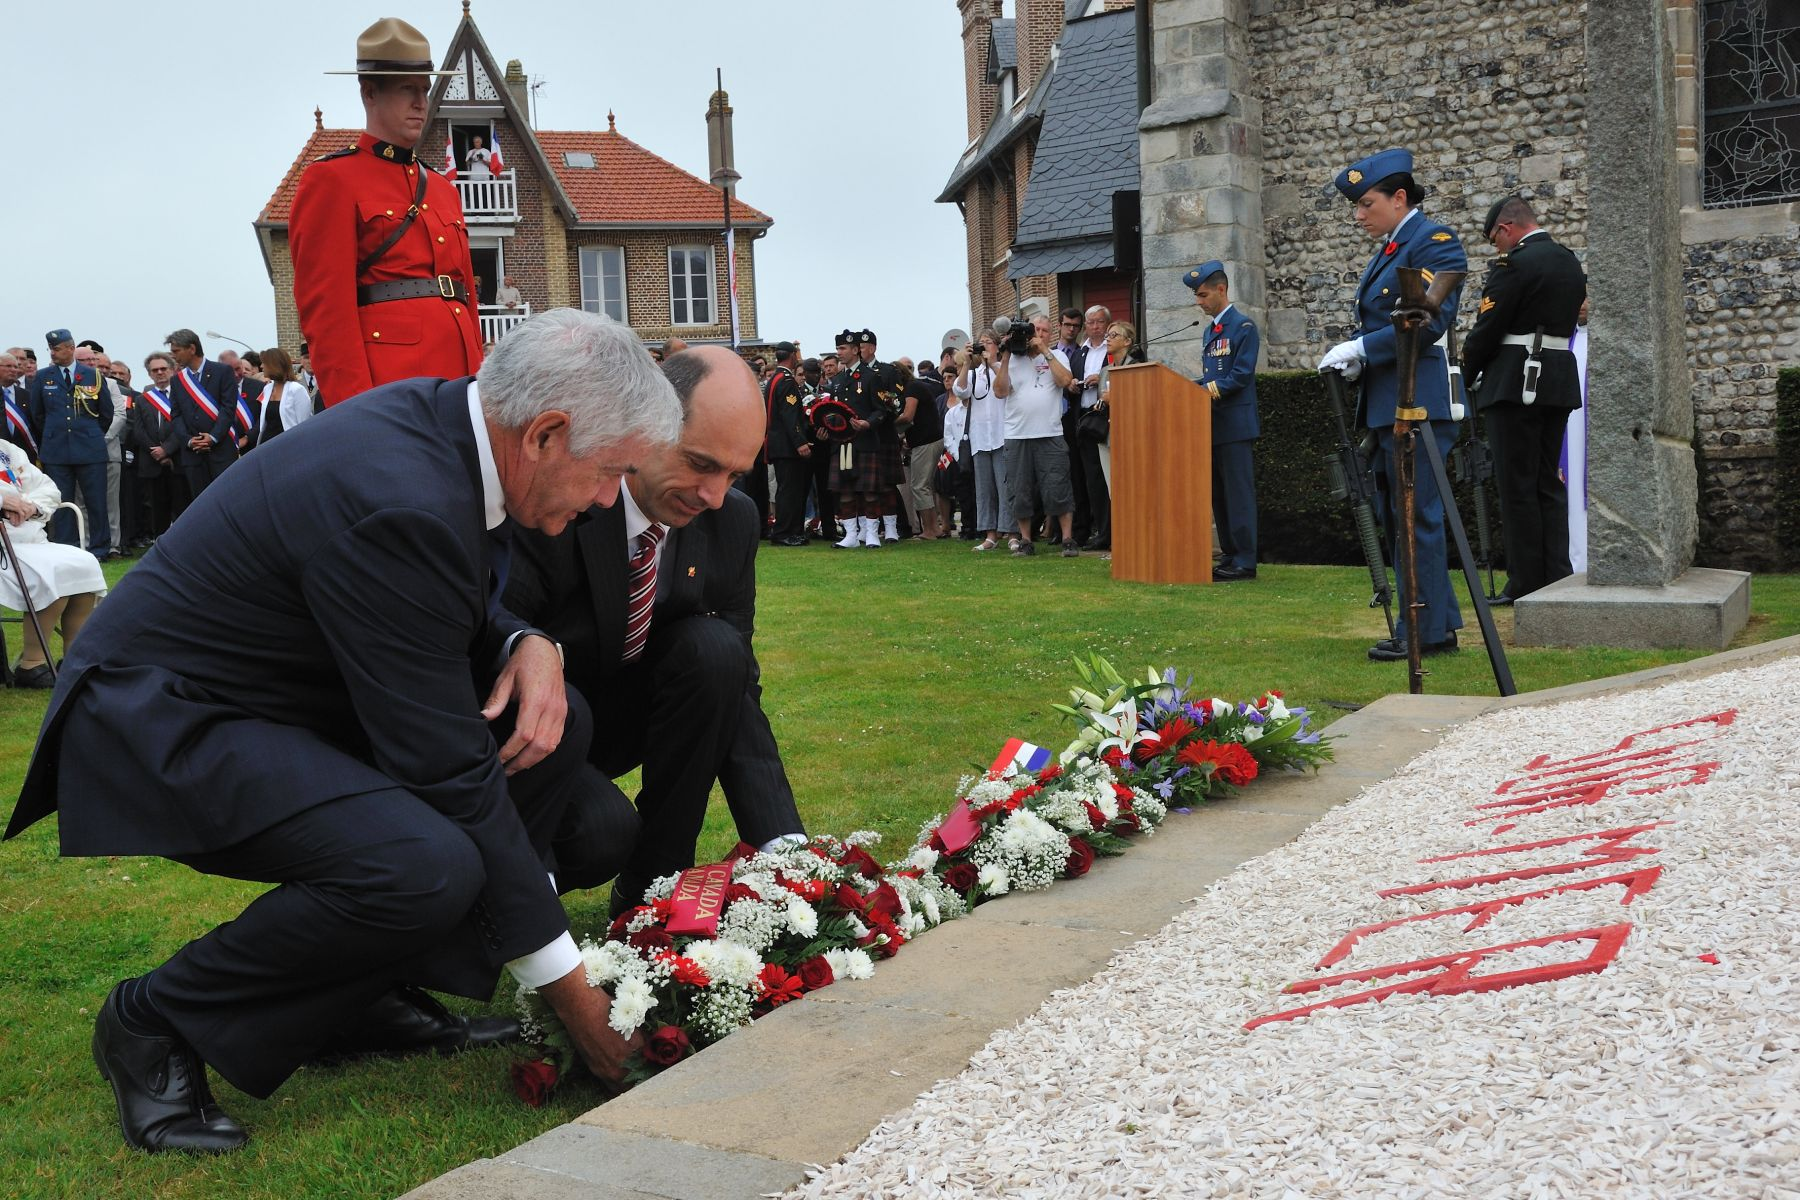 As did His Excellency, on behalf of the people of Canada, the Honourable Steven Blaney, Minister of Veterans Affairs, and Mr. Lawrence Cannon, Canadian Ambassador to France laid wreaths.